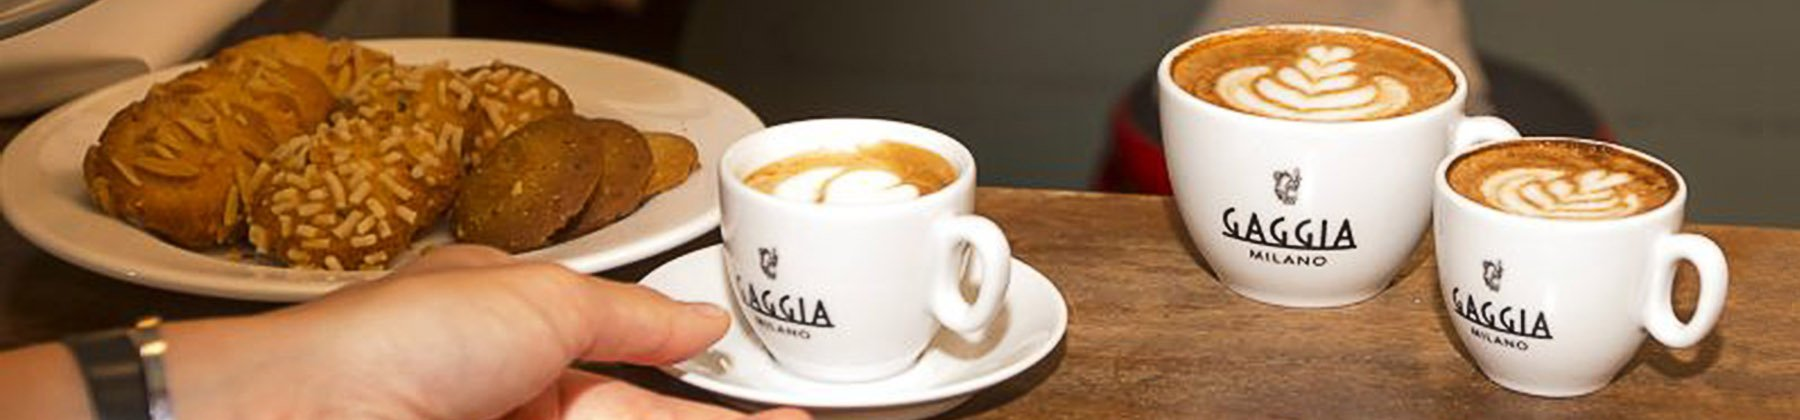 Photo of Gaggia coffee products.